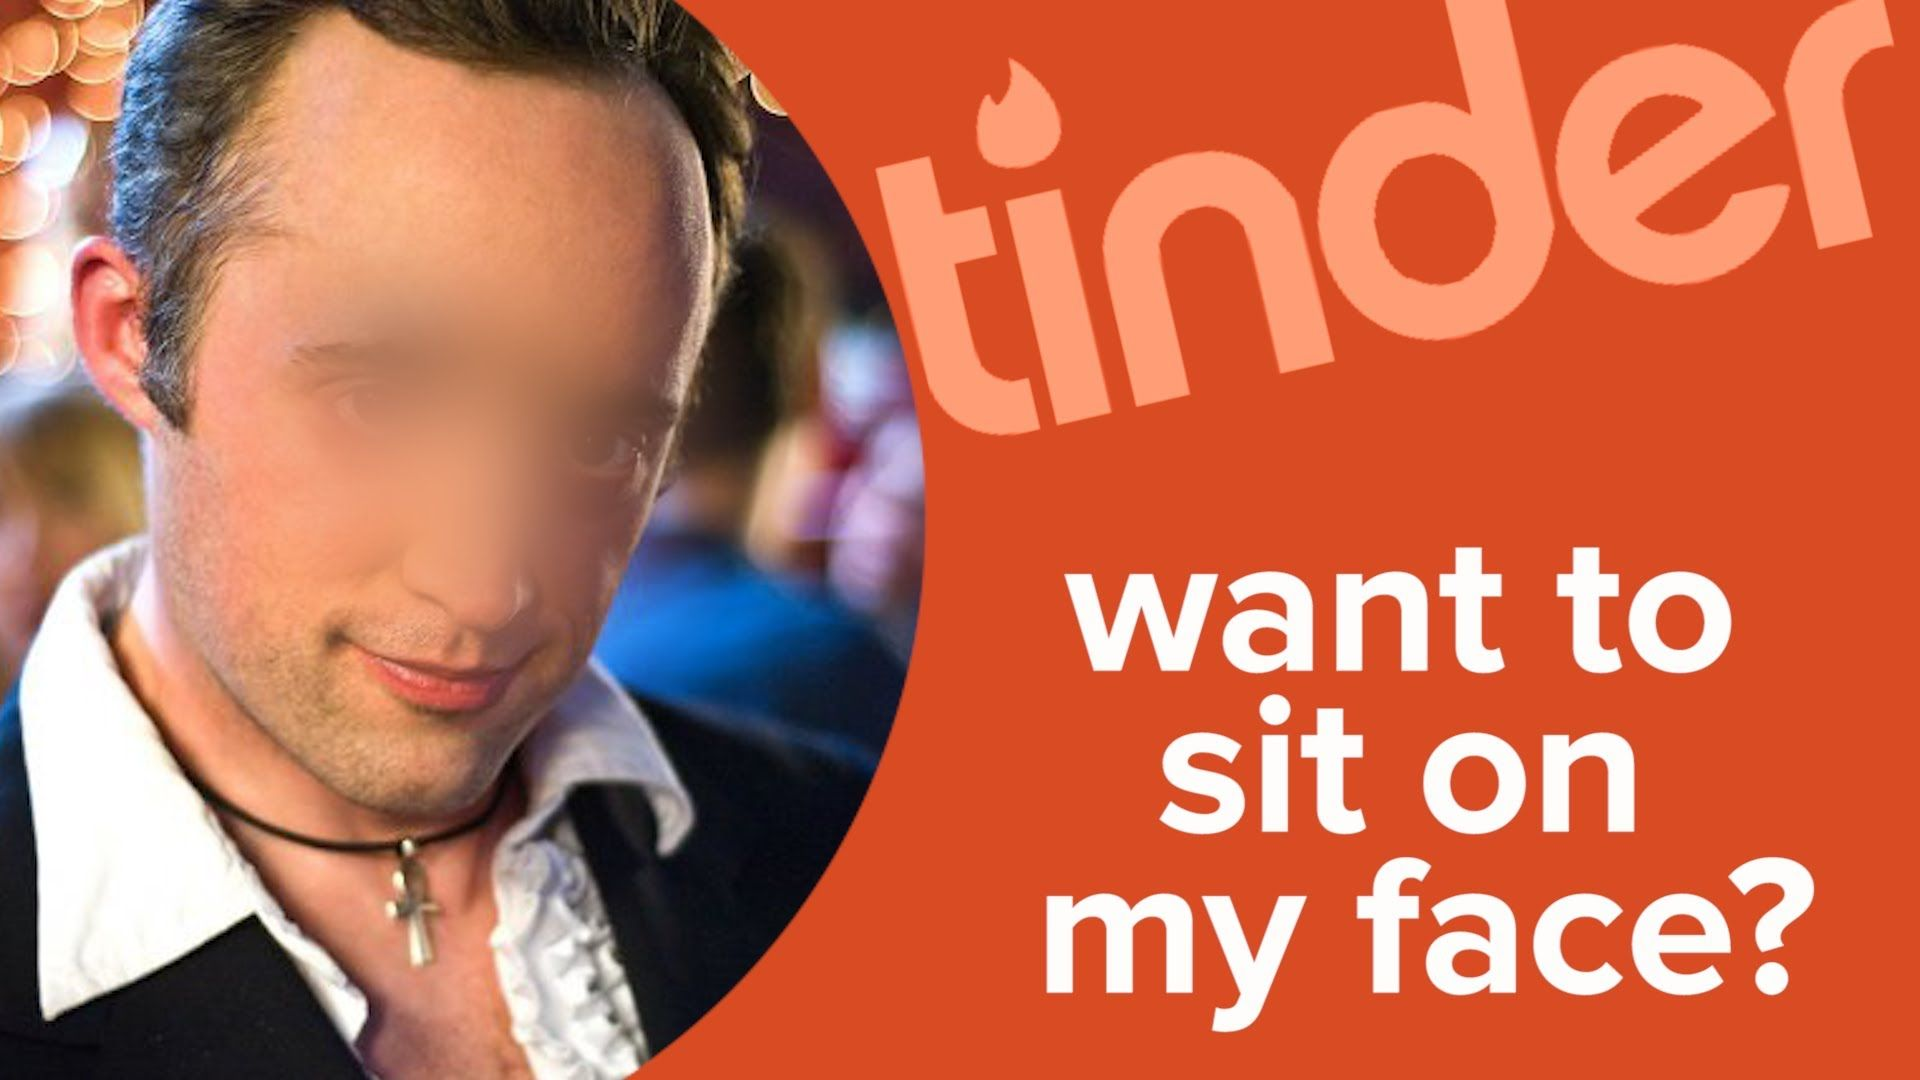 The Best Responses To Tinder Creeps Tinder, Giggle, No